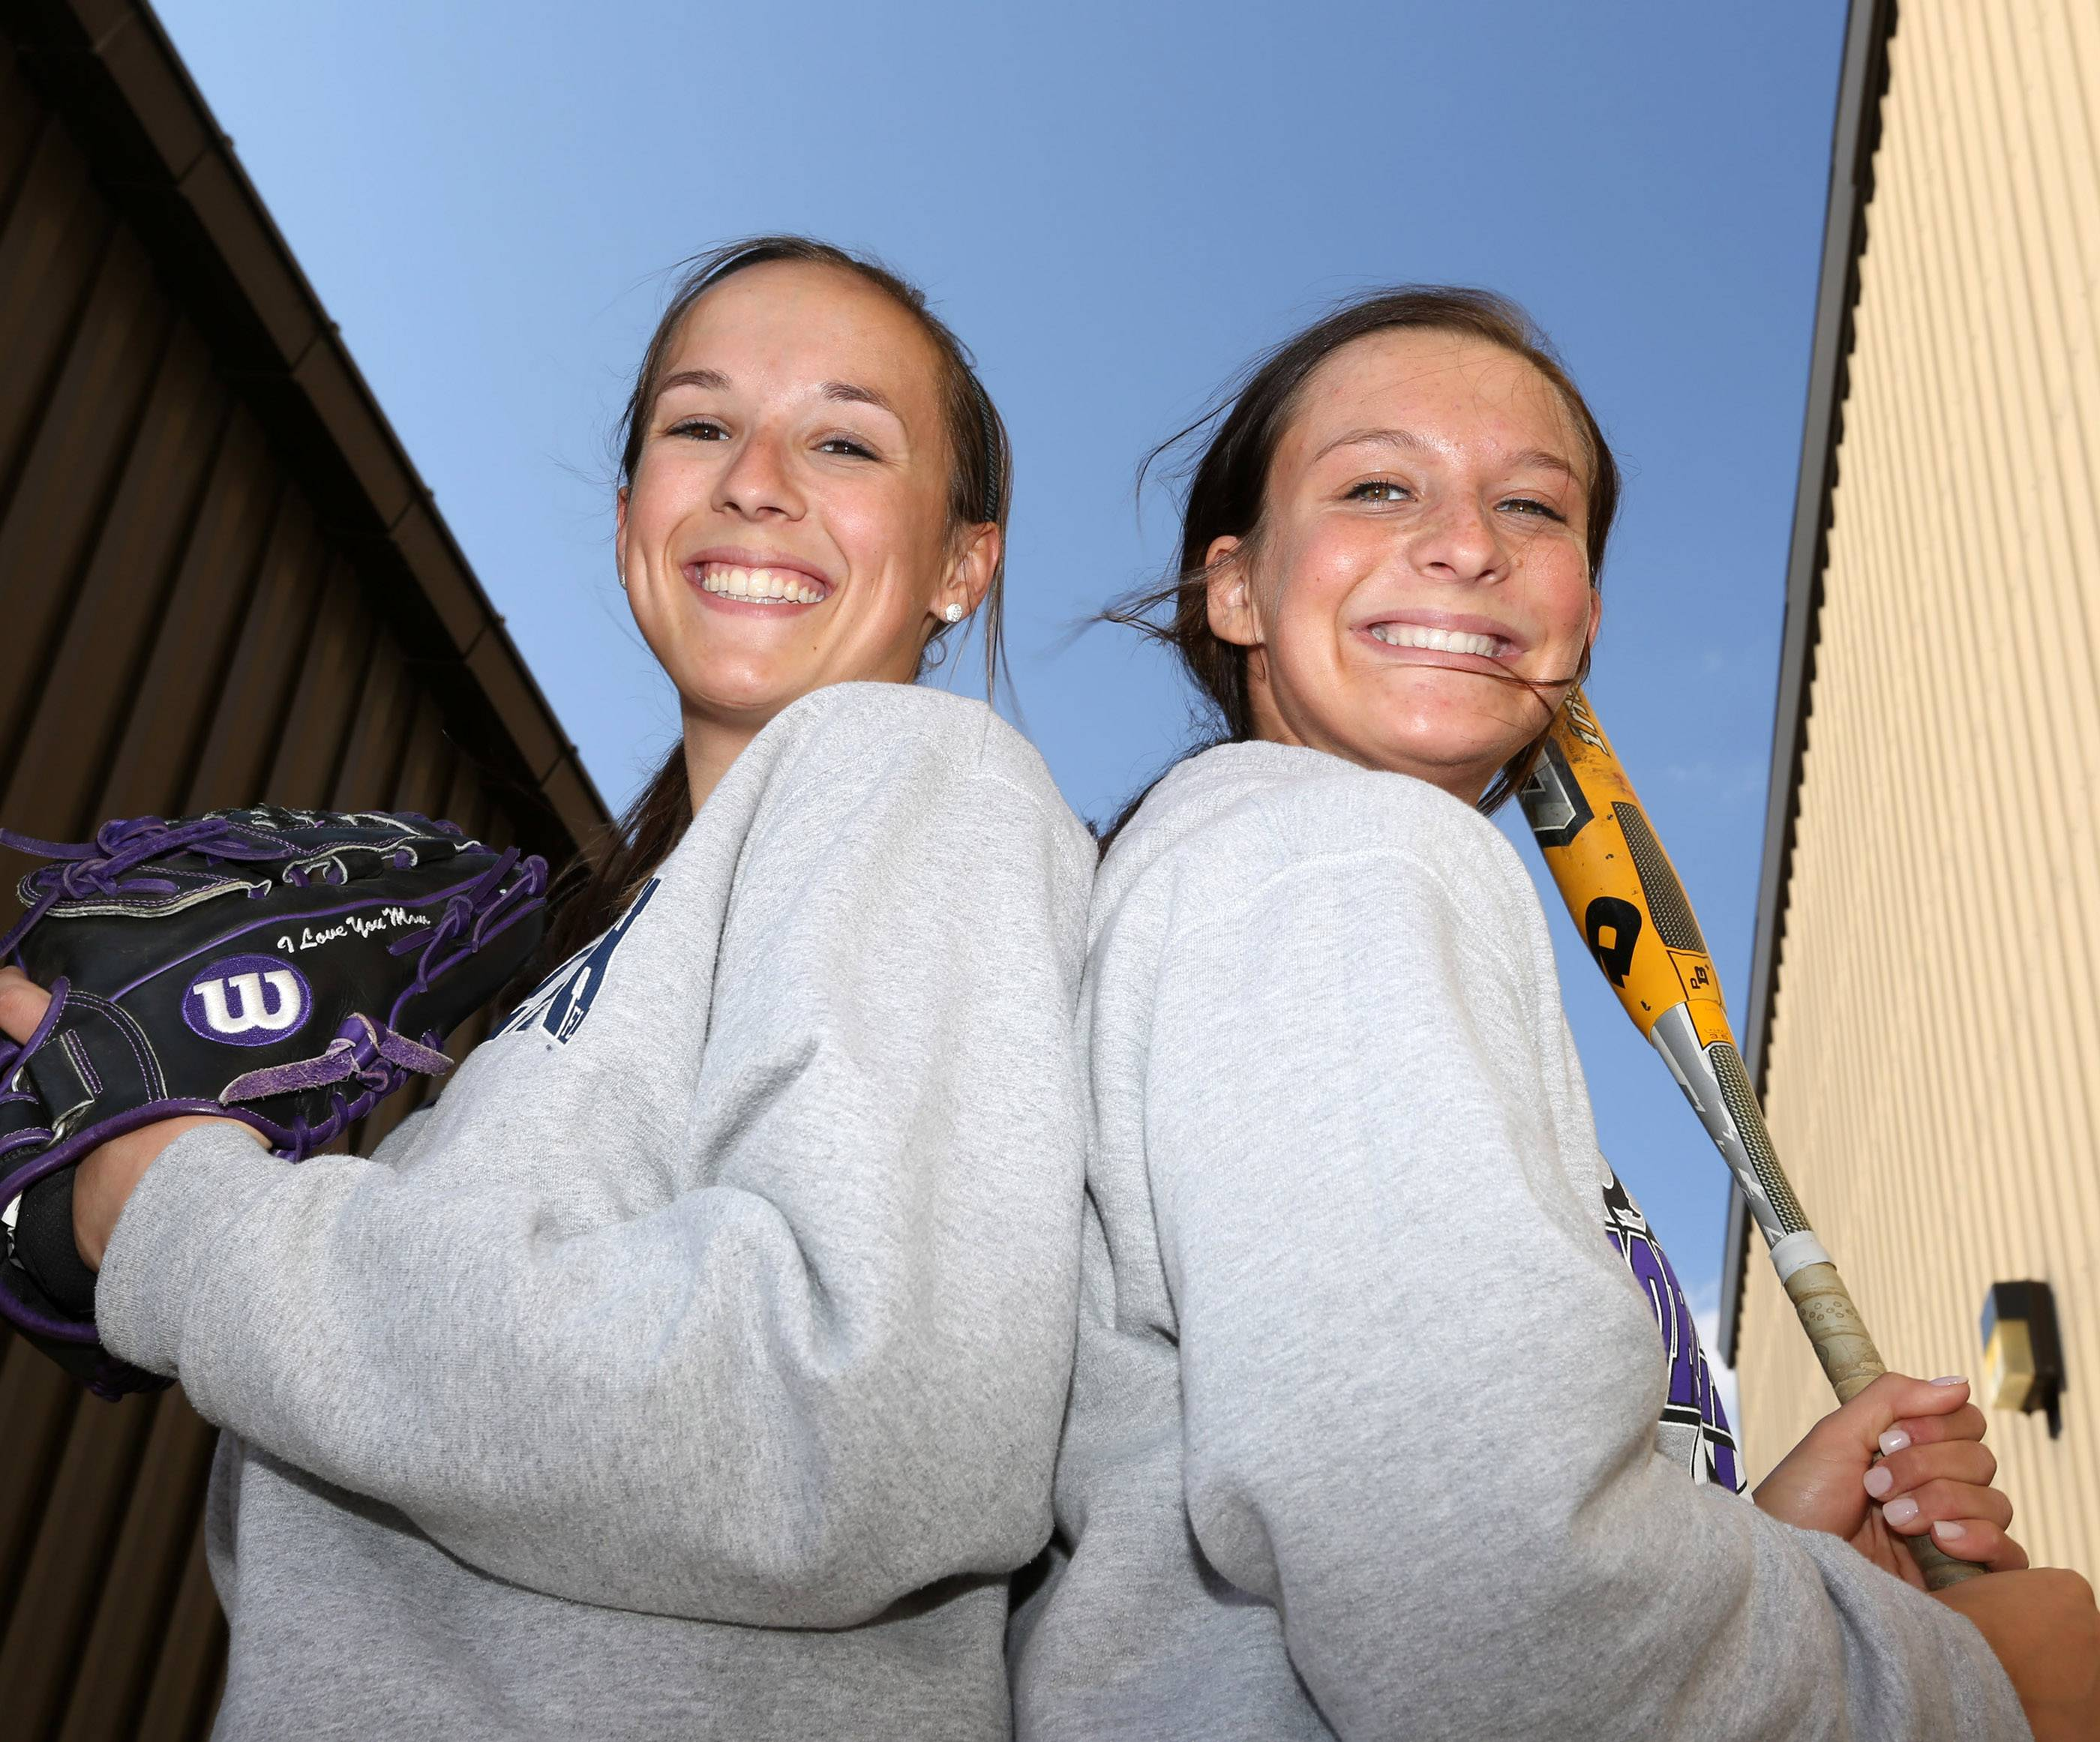 Warren softball senior teammates Jana Wagner and Jazmin Bonke were already best friends, and now both are coping, together, with the loss of a parent within the past year.